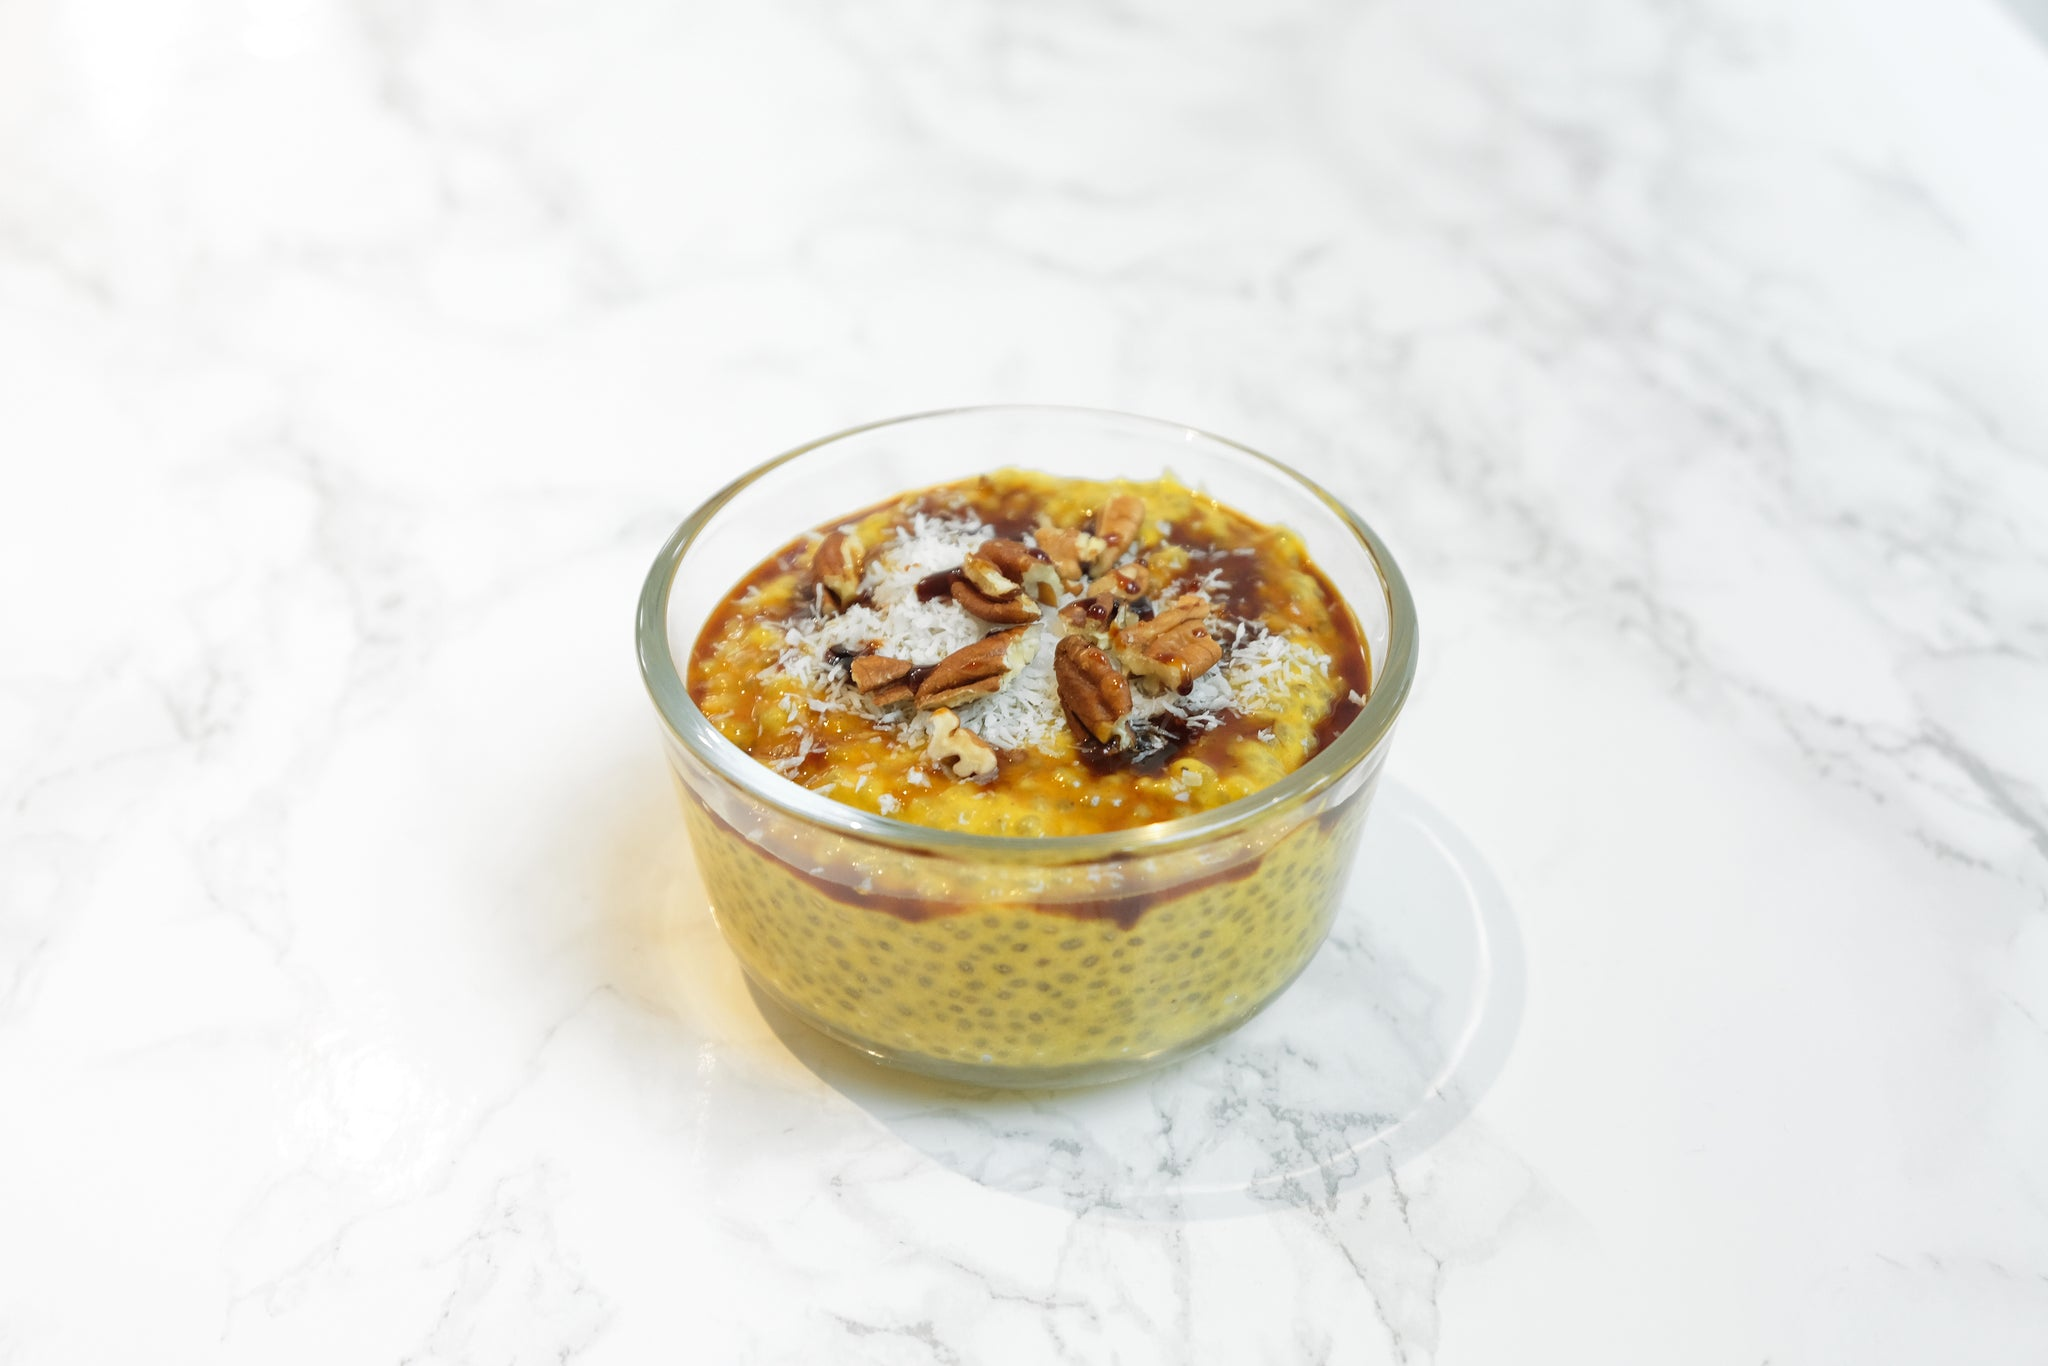 Dairy-Free and Vegan Pumpkin Pie Chia Pudding made with JOI